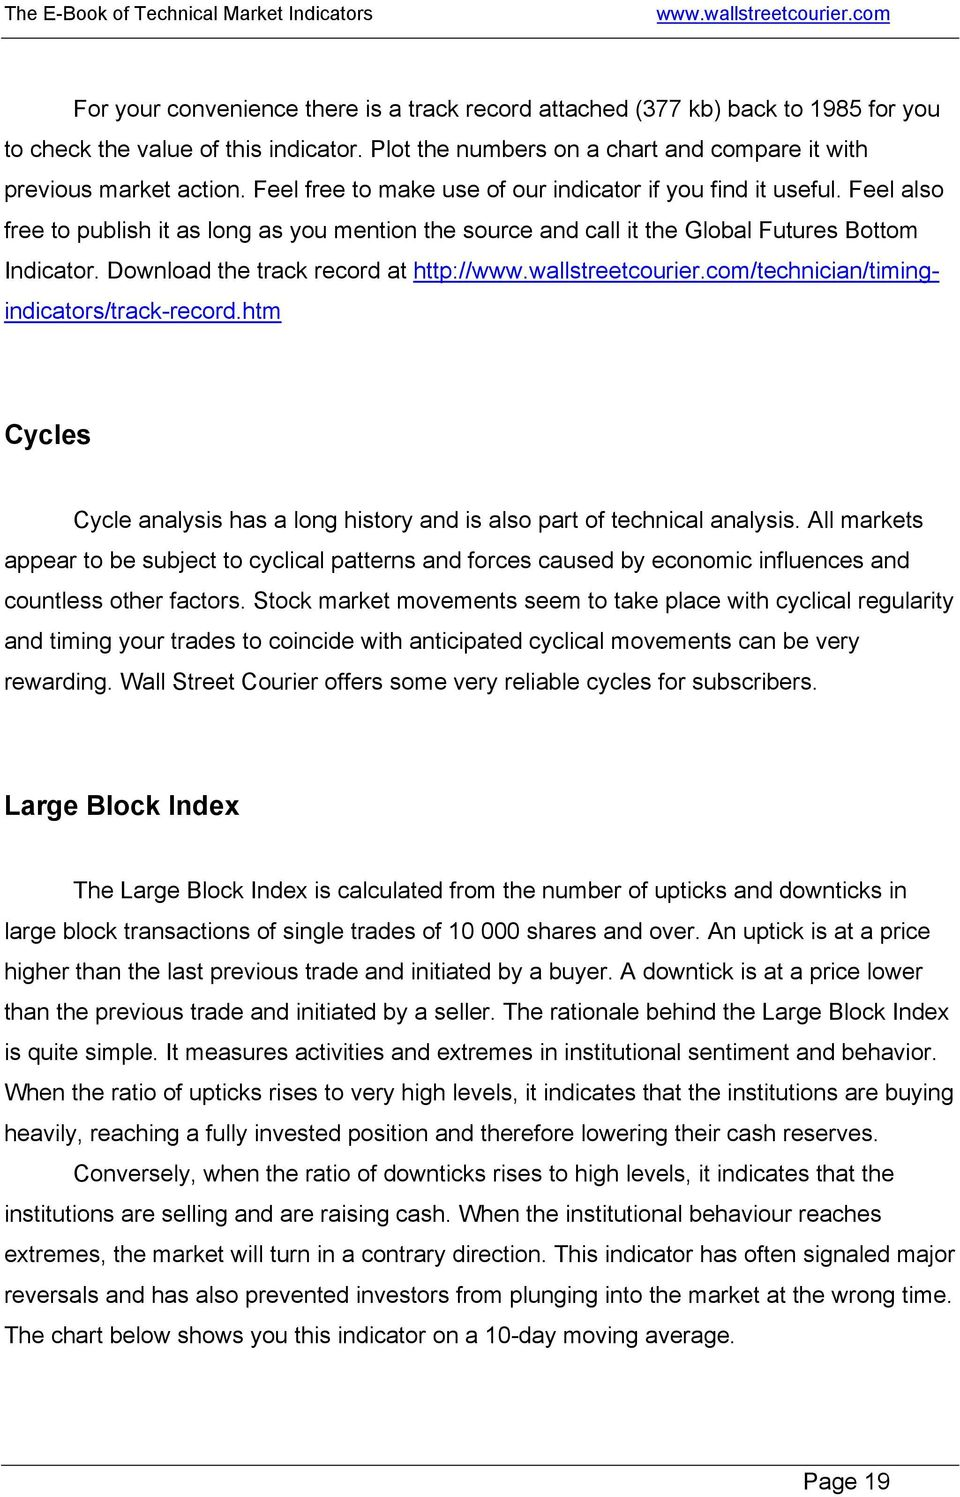 Download the track record at http:///technician/timingindicators/track-record.htm Cycles Cycle analysis has a long history and is also part of technical analysis.